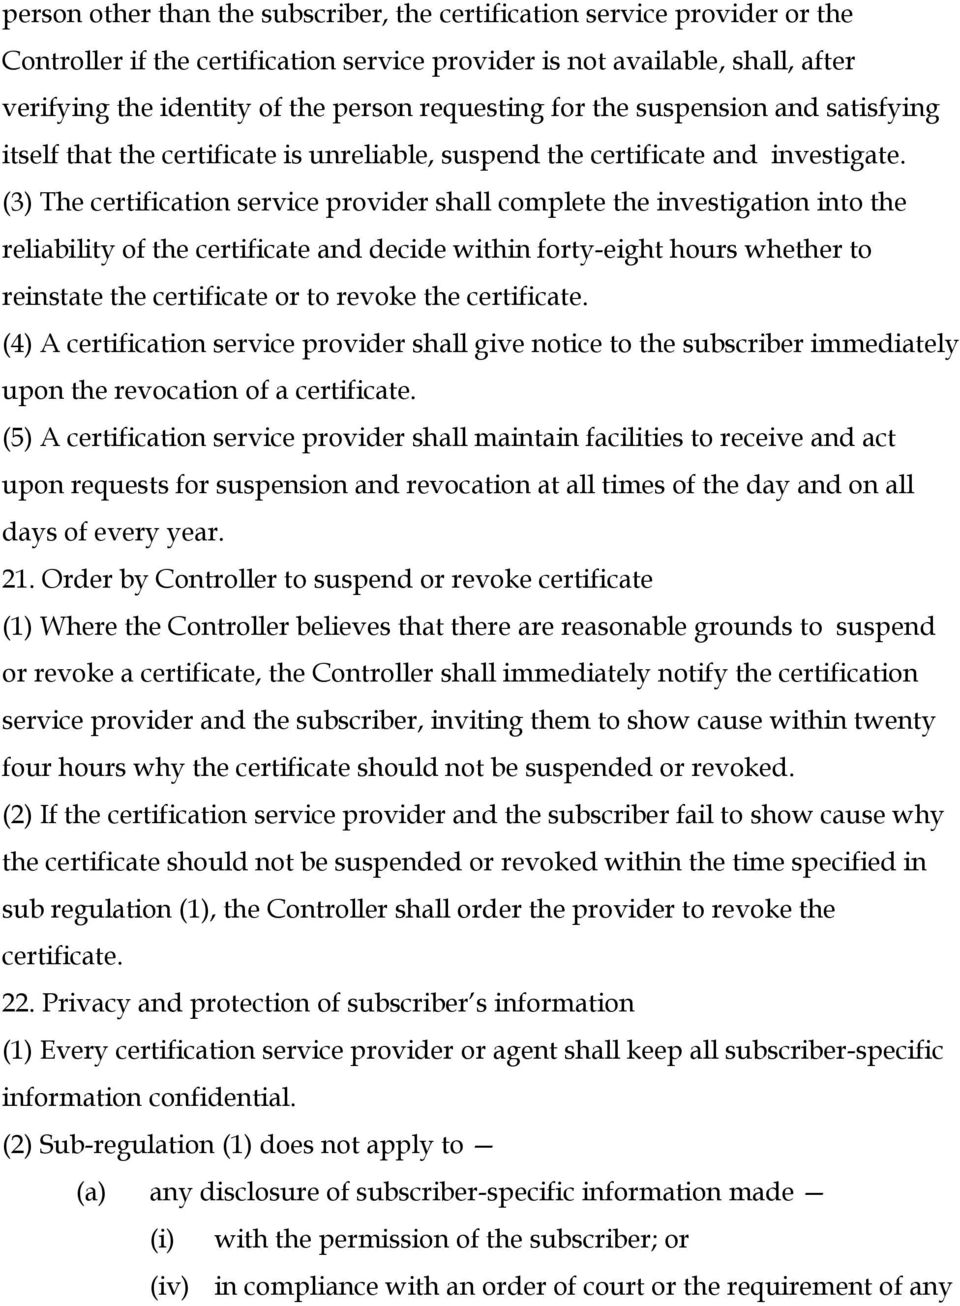 (3) The certification service provider shall complete the investigation into the reliability of the certificate and decide within forty-eight hours whether to reinstate the certificate or to revoke